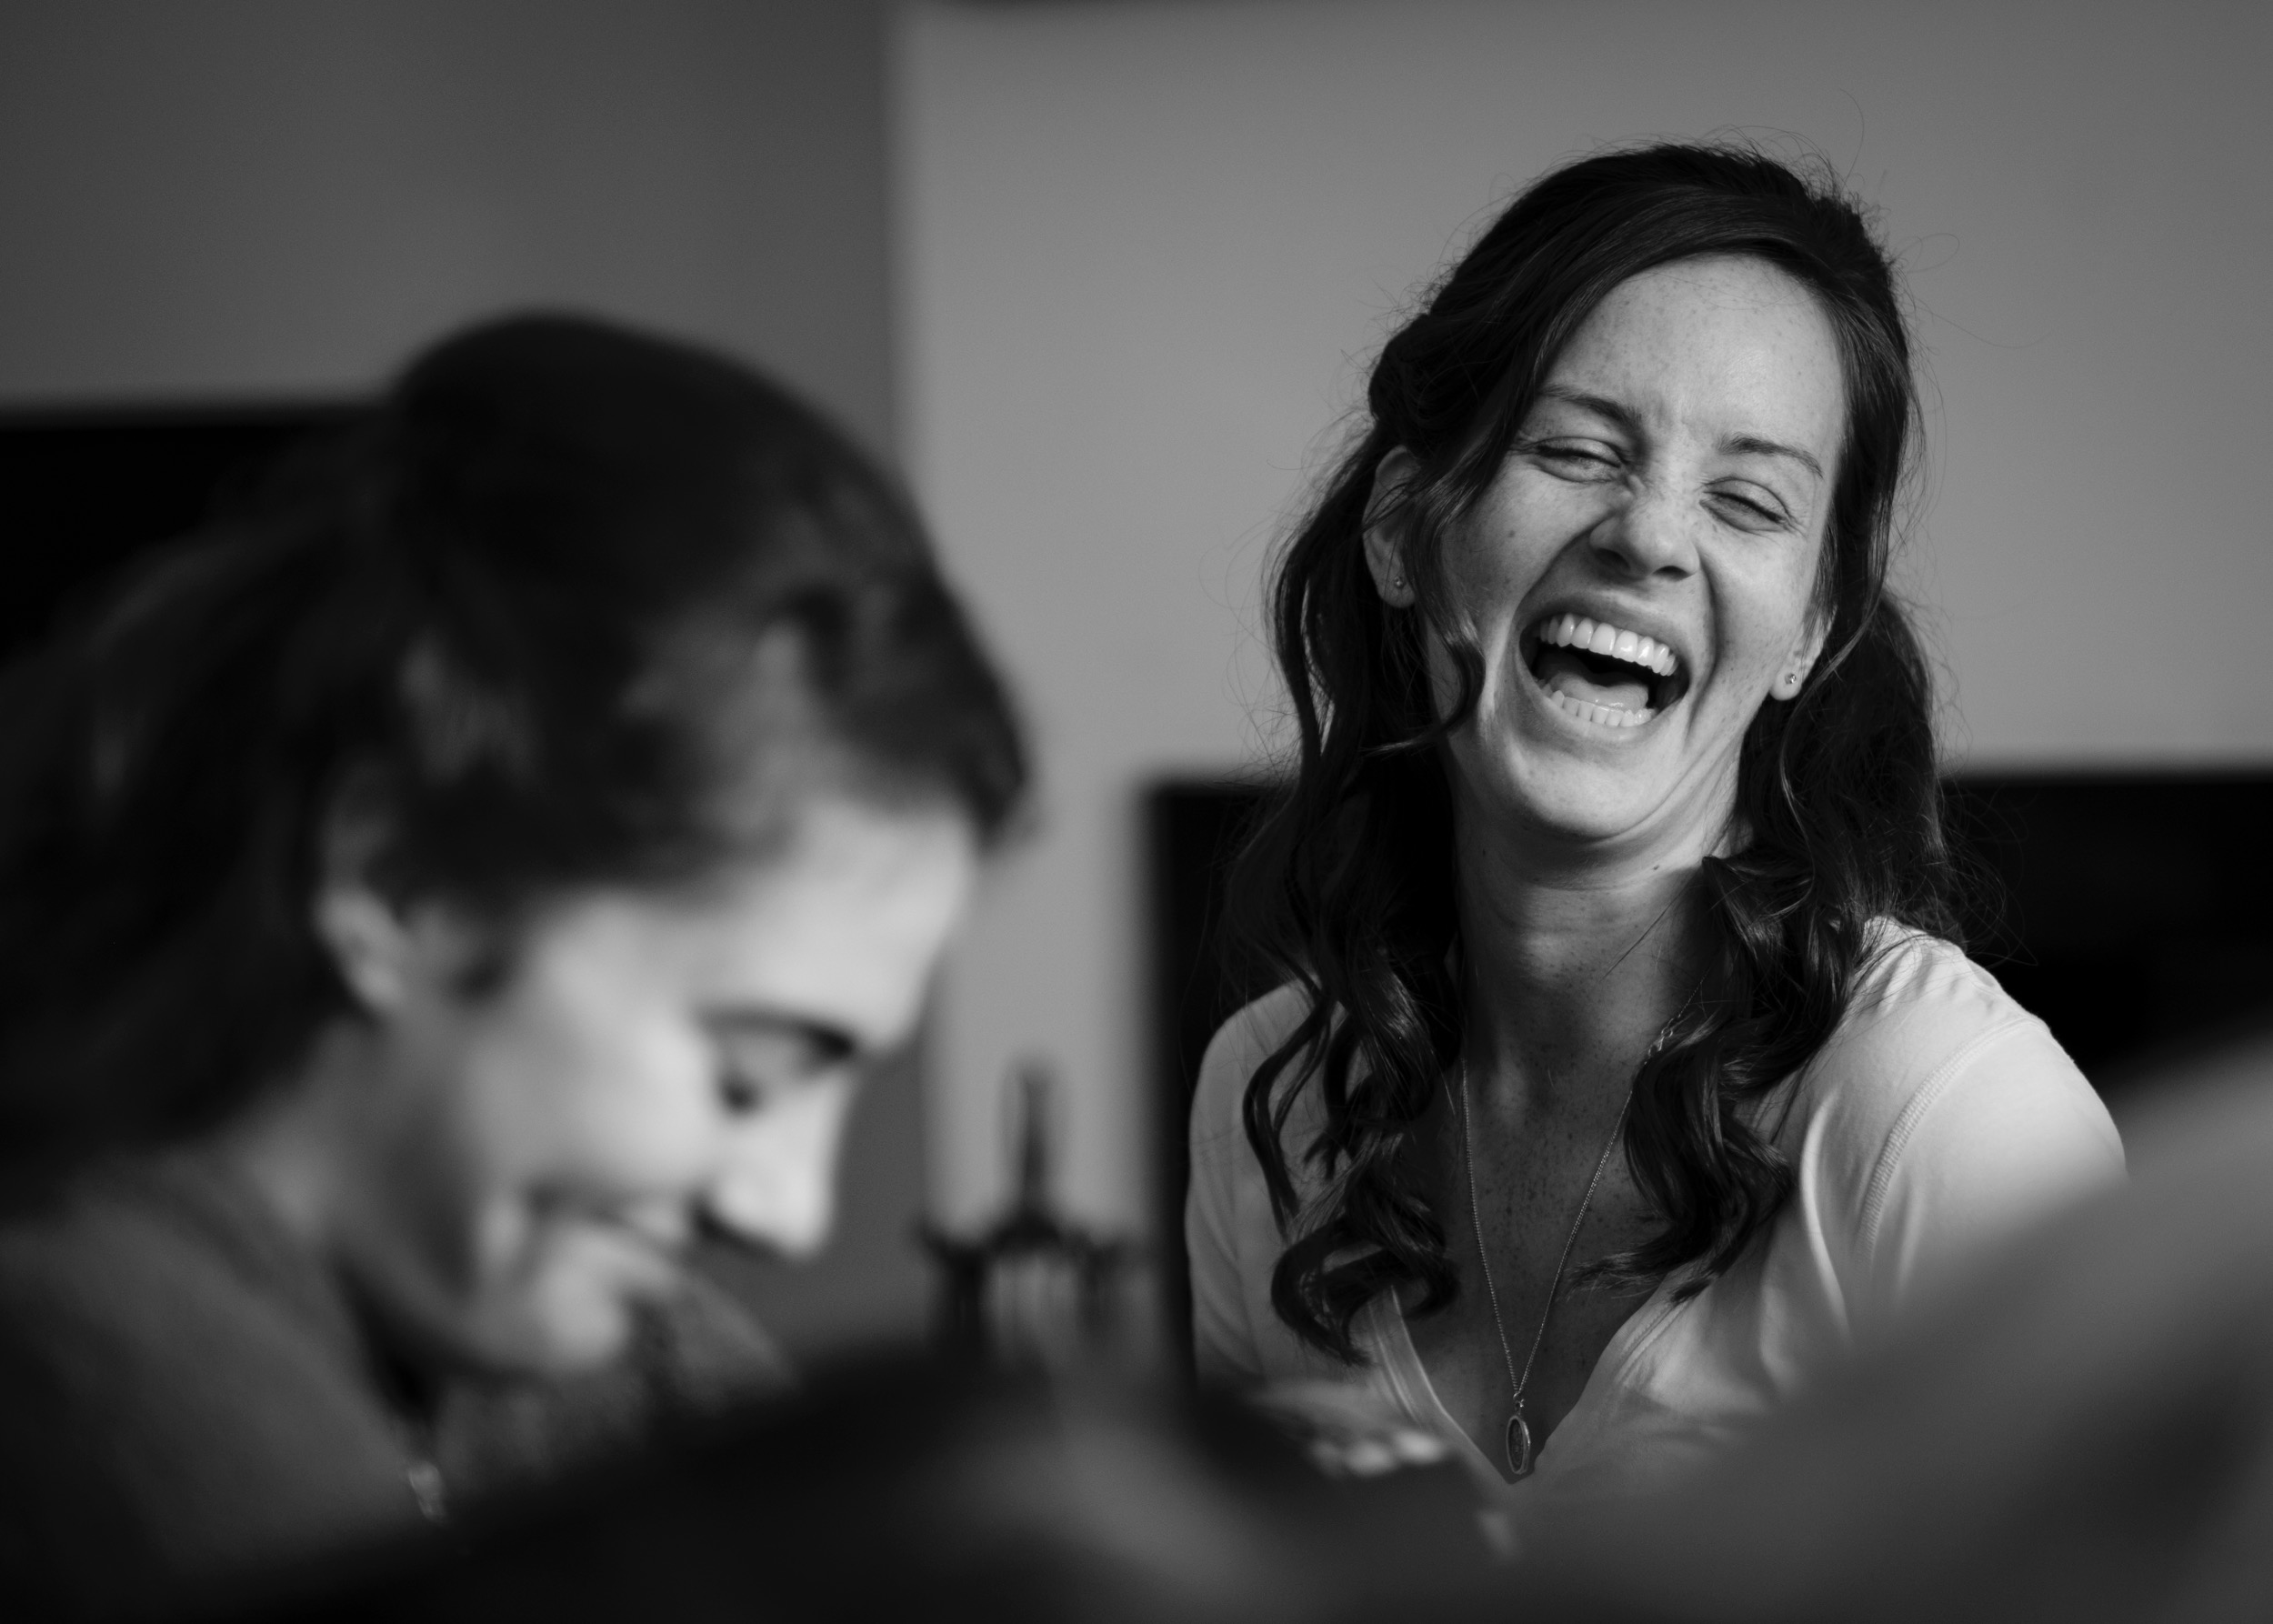 Wedding Photographer Rupert Marlow photo of Black and white wedding photography showing Laughing Bridesmaid